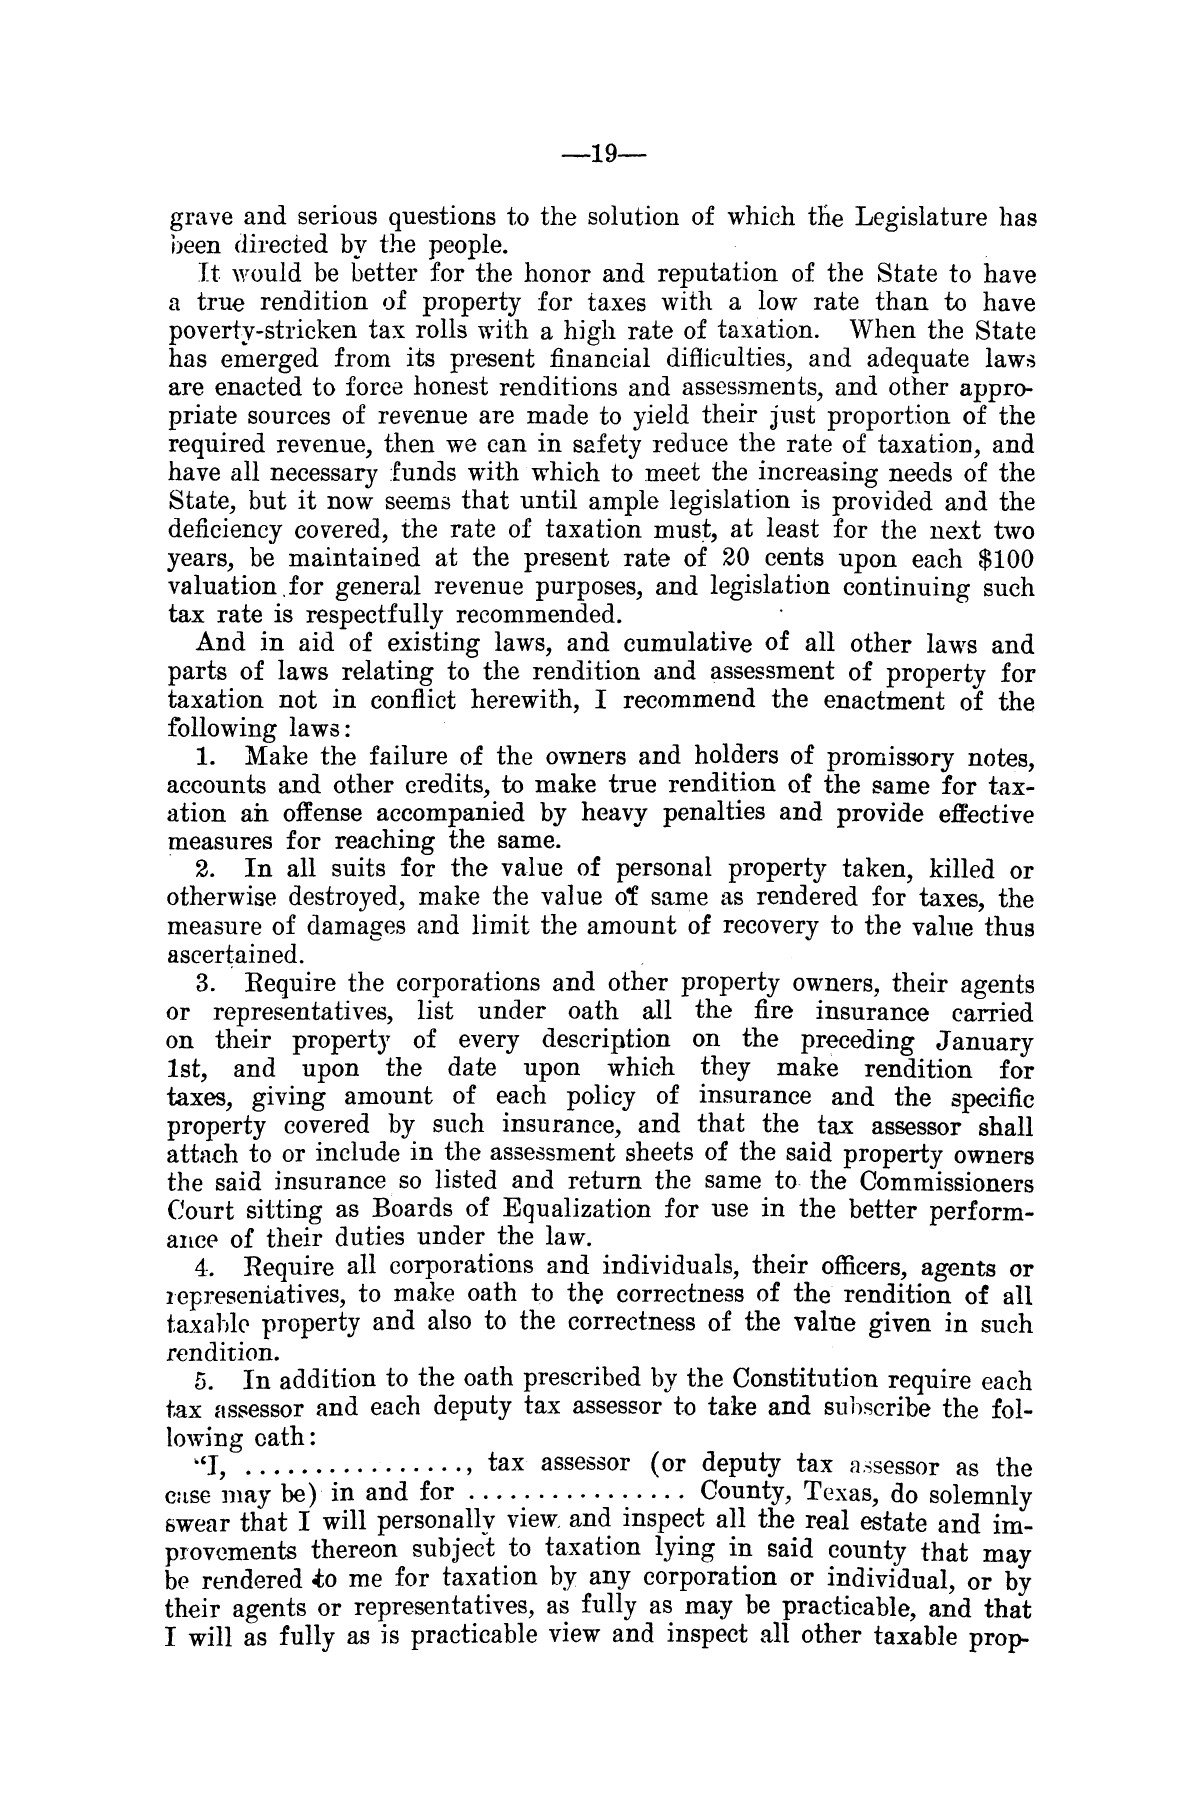 Message of Governor T.M. Campbell to the thirtieth legislature of Texas, to which is appended the State Democratic Platform adopted at Dallas, Texas, August 13, 1906.                                                                                                      [Sequence #]: 19 of 27